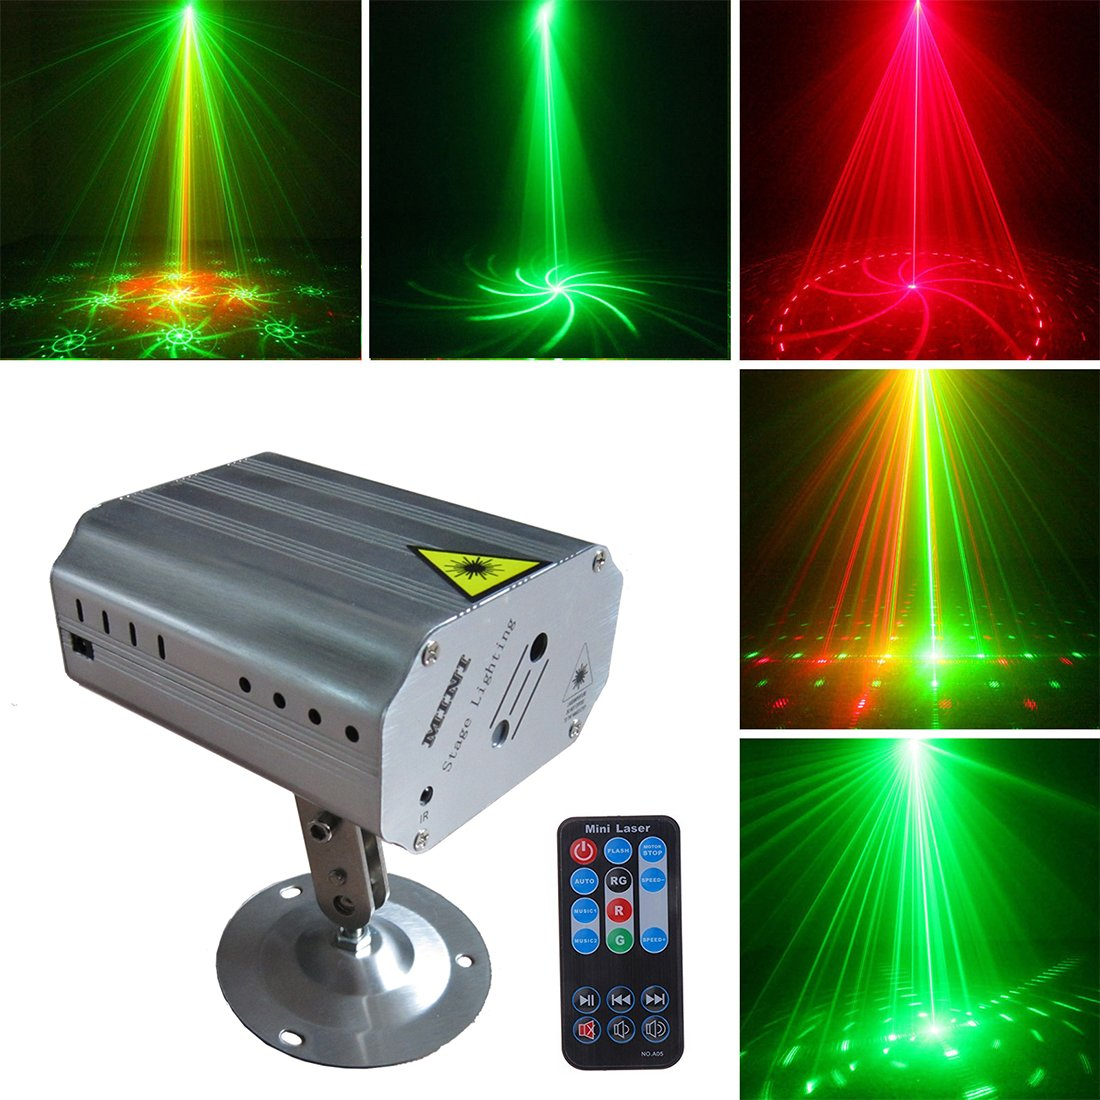 Party Lights DJ Disco Stage Lights Sbolight Led Projector Karaoke Strobe Perform for Stage Lighting with Remote Control for Dancing Thanksgiving KTV Bar Birthday Outdoor by Sbolight